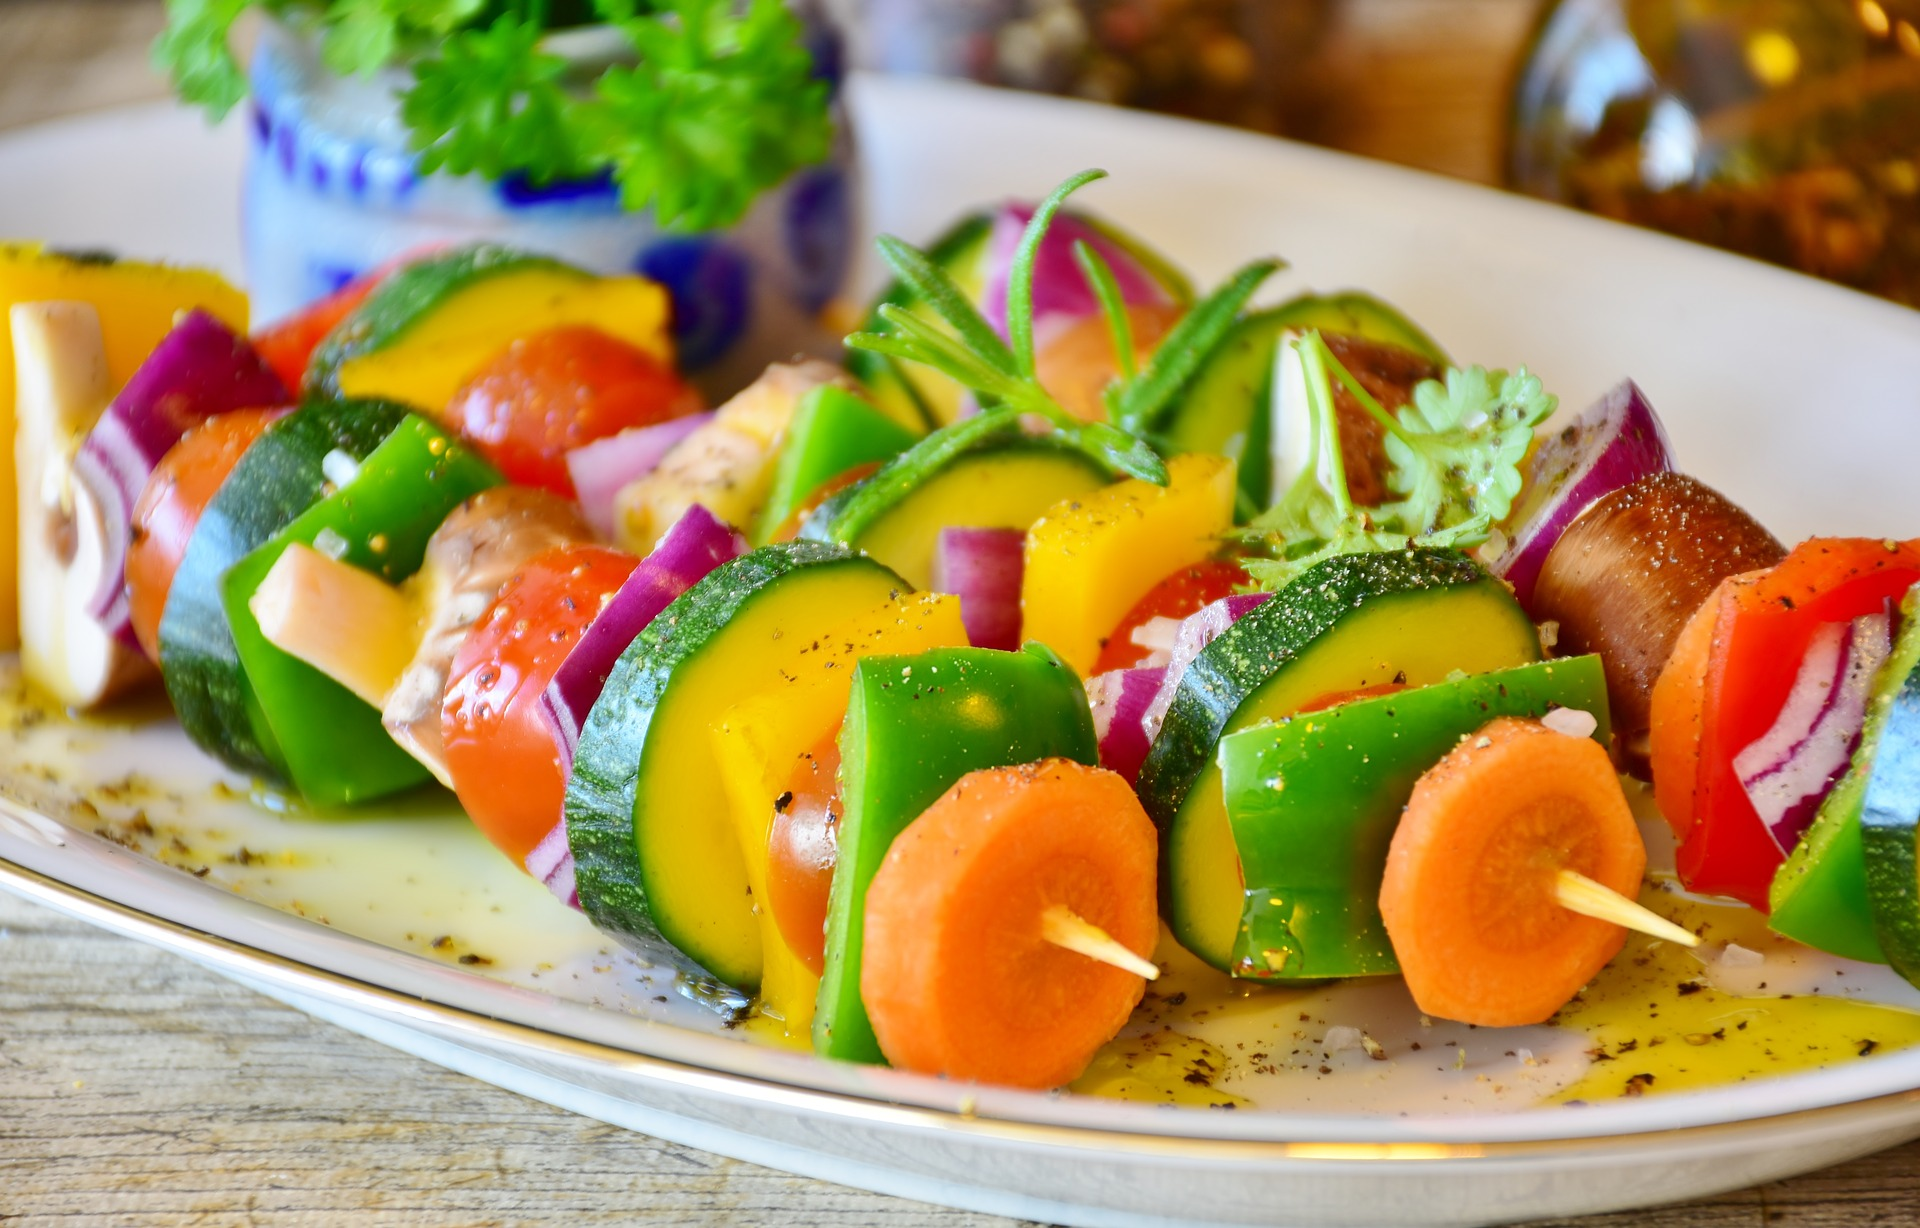 Variety of vegetables on a skewer for a vegan diet